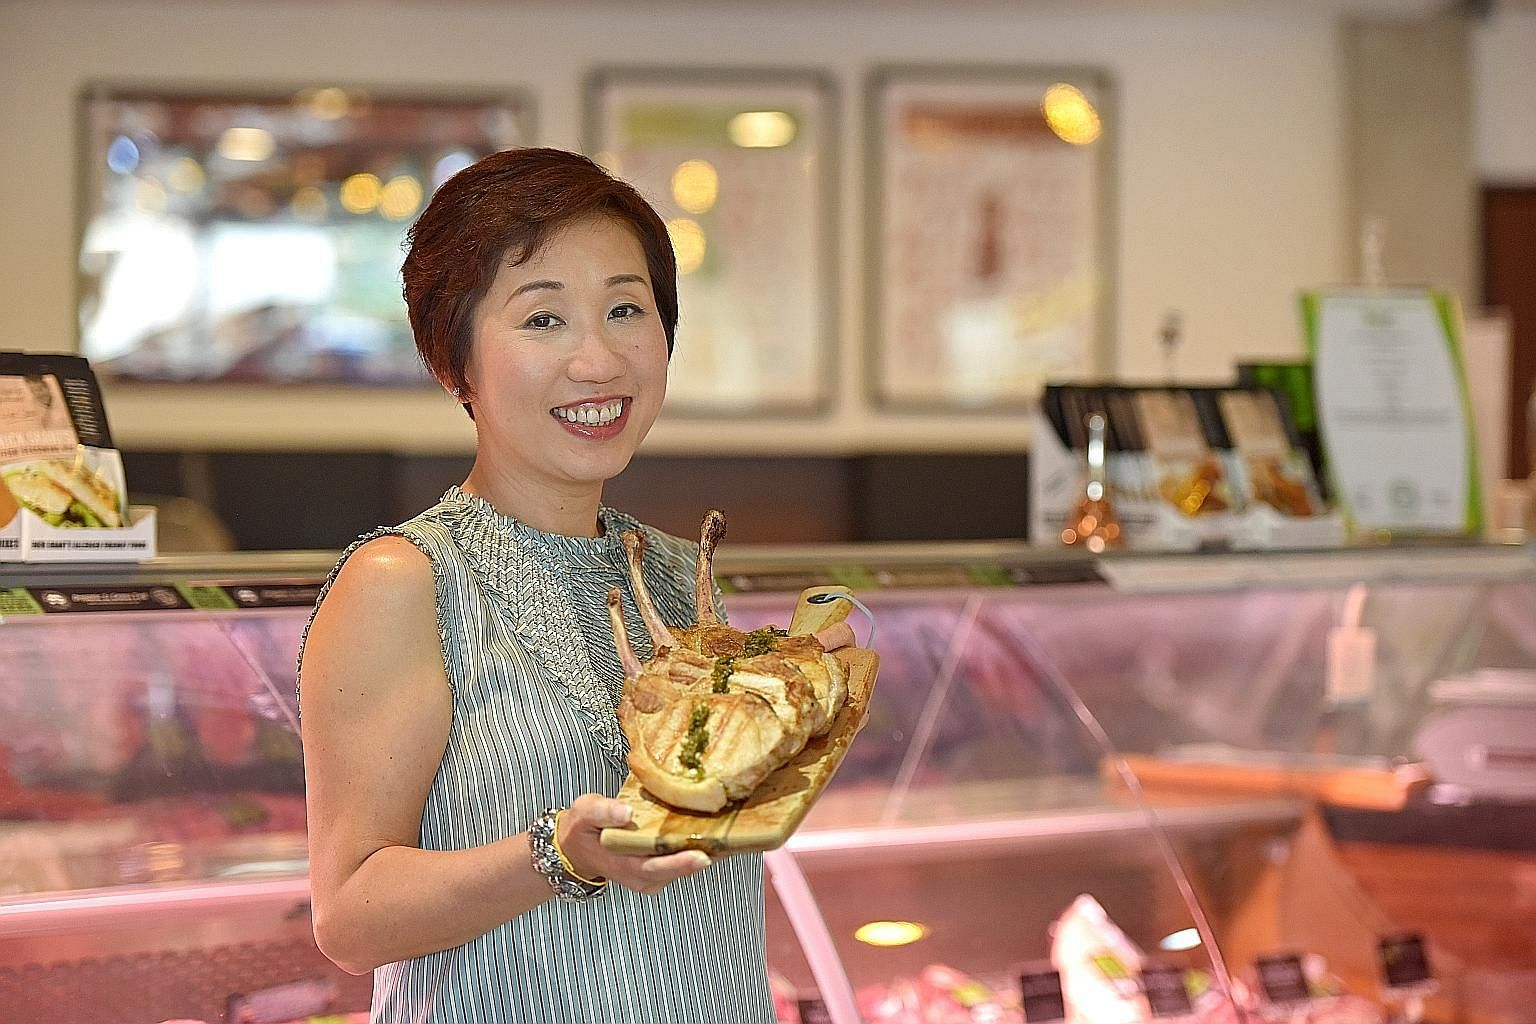 For Ms Wendy Foo, co-founder of Ryan's Grocery, food is one way of showing love for her family.